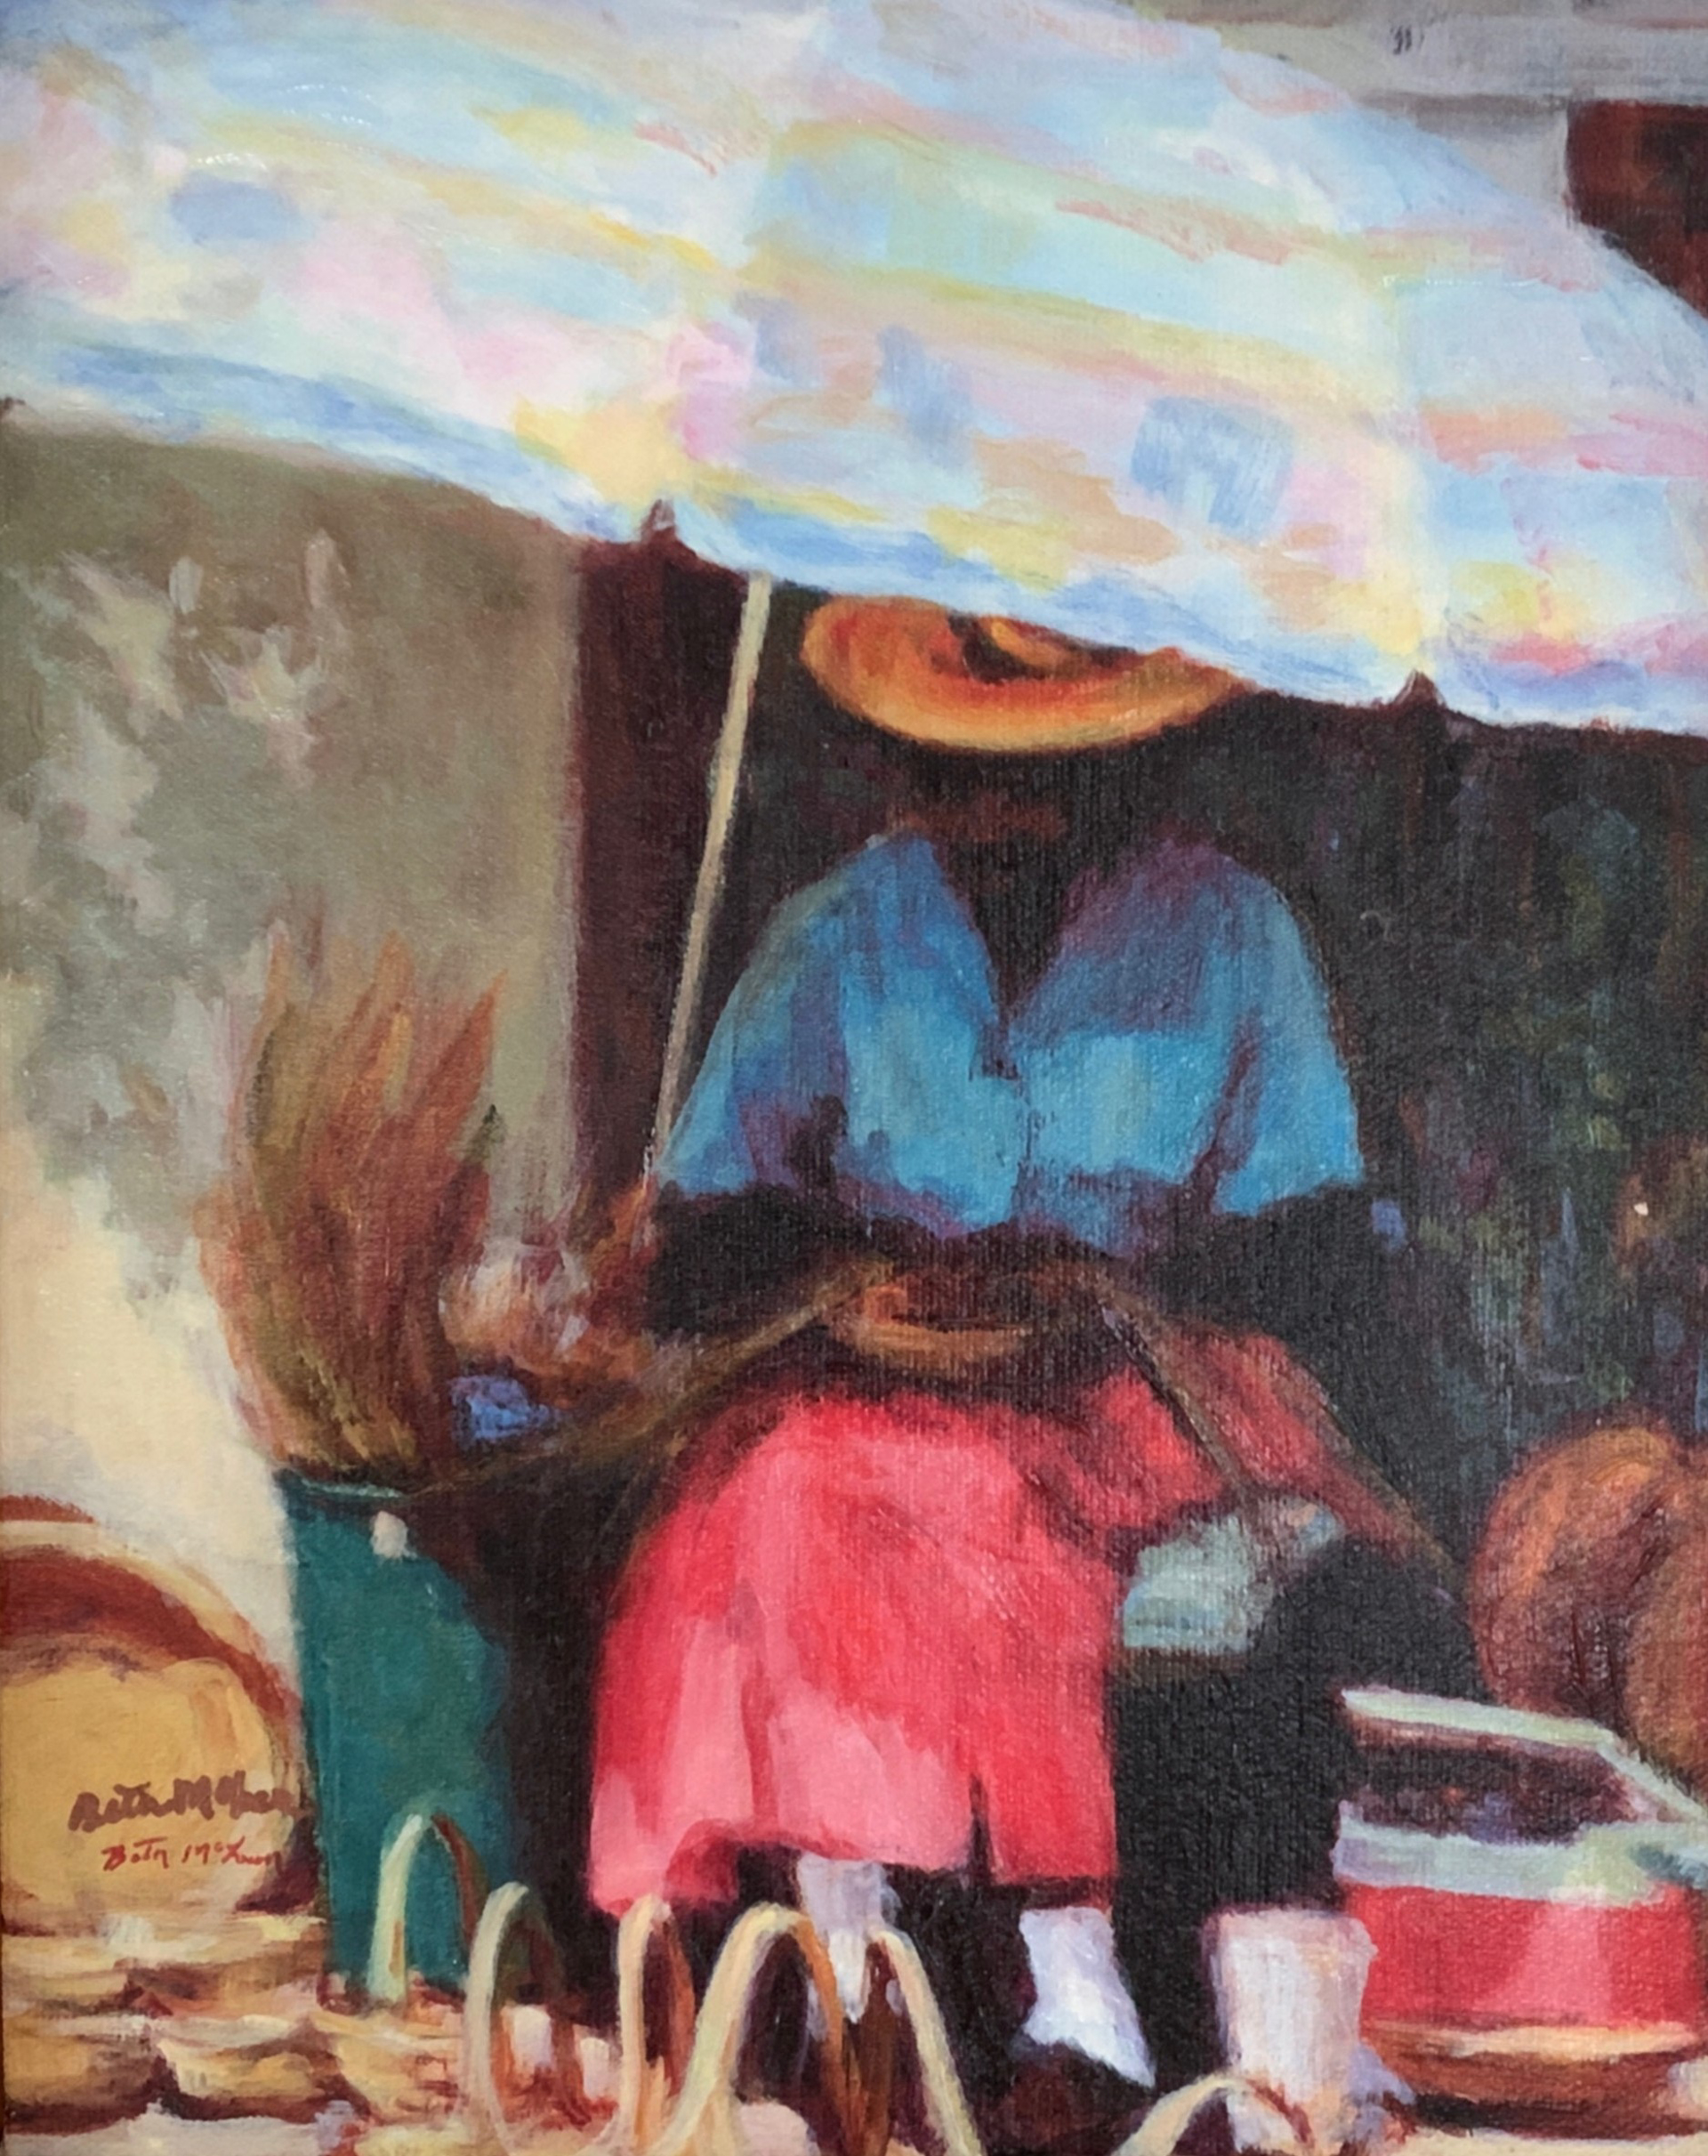 Basket Lady with Pink Skirt by Beth McLean -- Giclee Prints